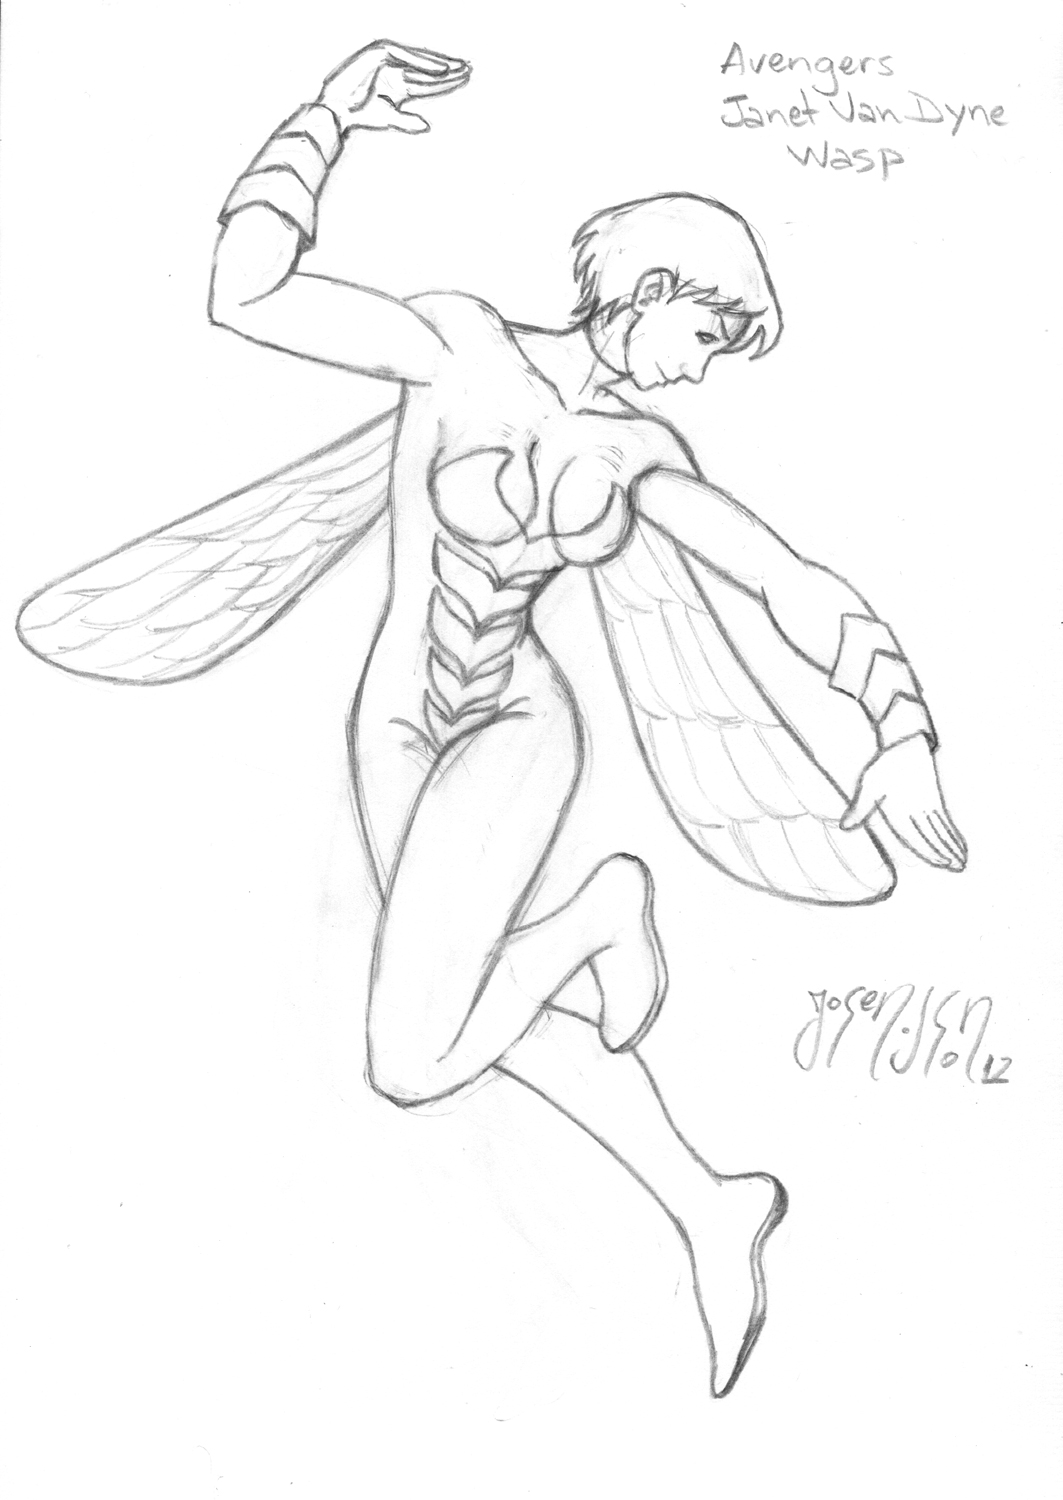 Avengers Wasp Coloring Pages : Avengers wasp free colouring pages